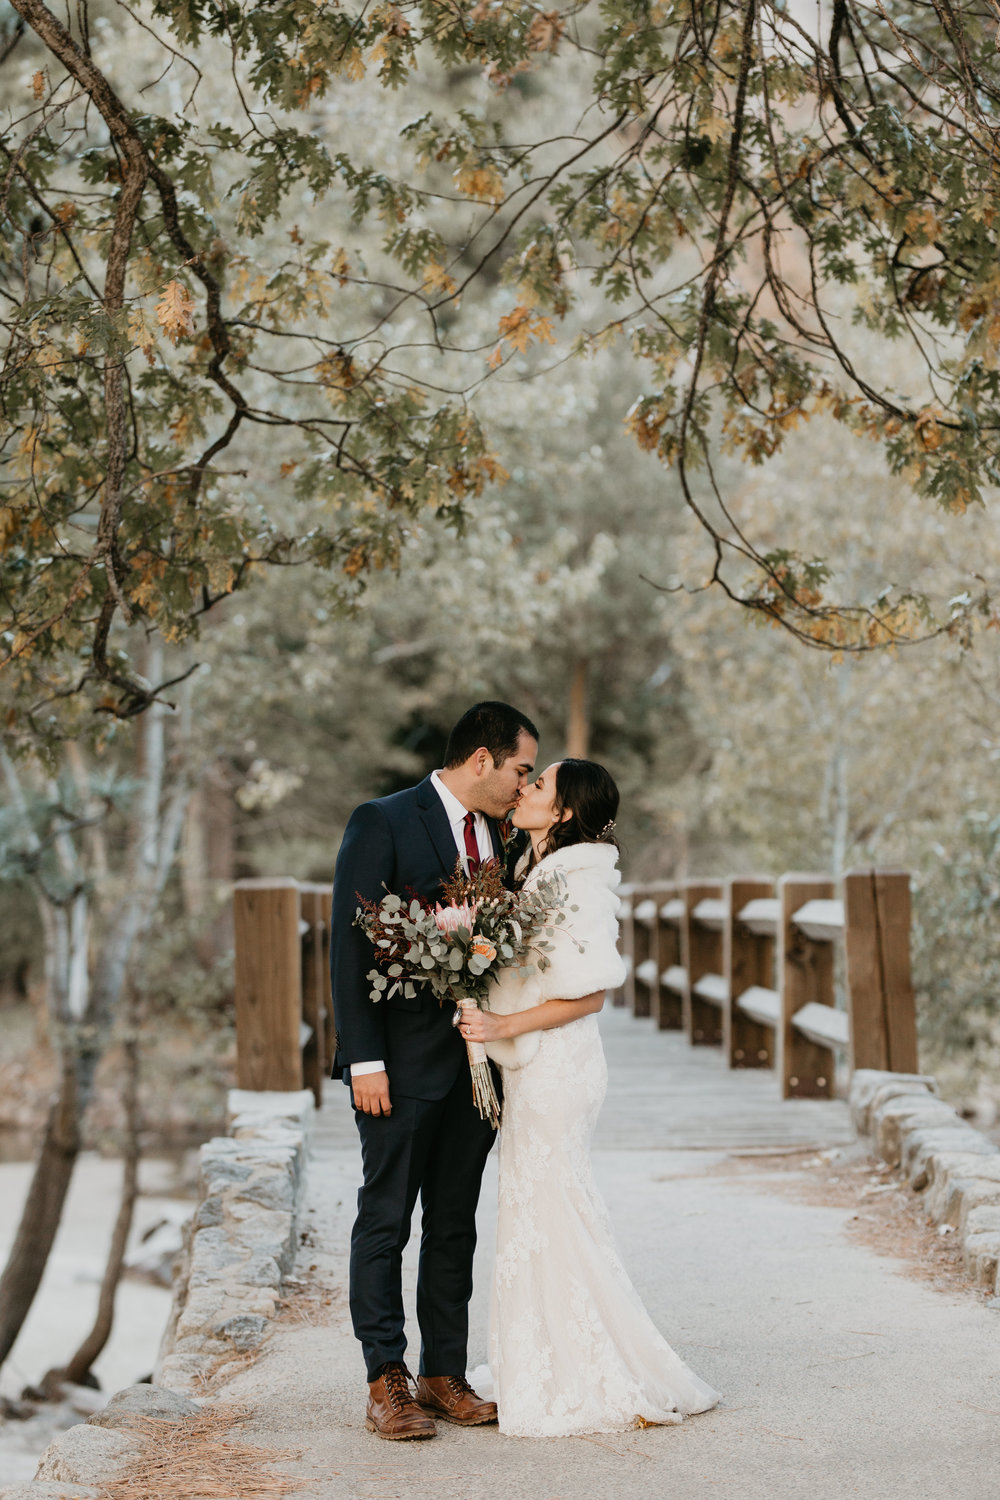 nicole-daacke-photography-intimate-elopement-wedding-yosemite-national-park-california-taft-point-sunset-photos-yosemite-valley-tunnel-view-first-look-sunrise-golden-granite-hiking-adventure-wedding-adventurous-elopement-photographer-22.jpg